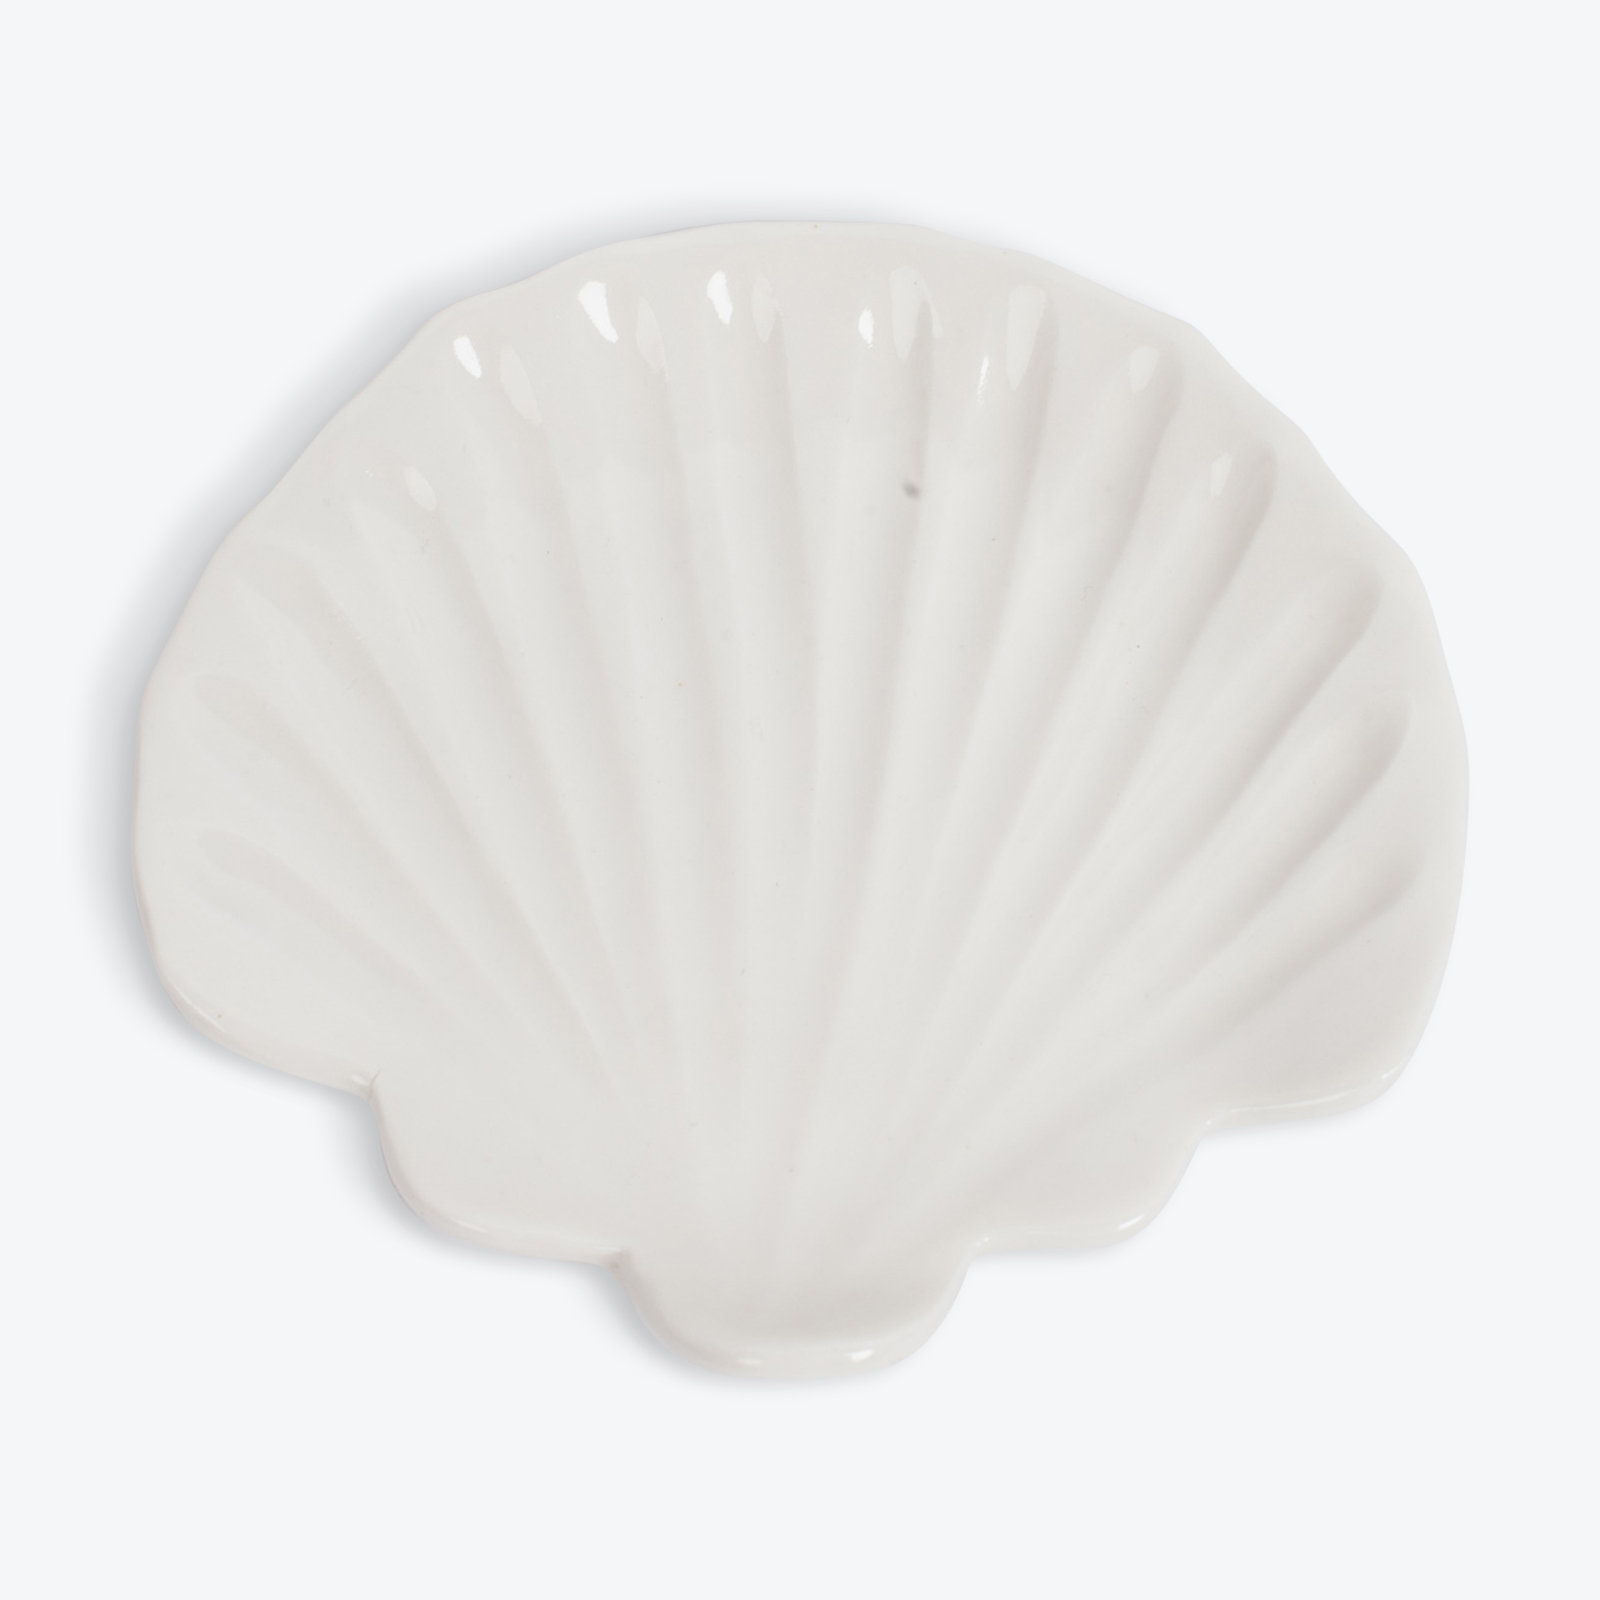 Shell Dish In Porcelain By Gretel Corrie 02